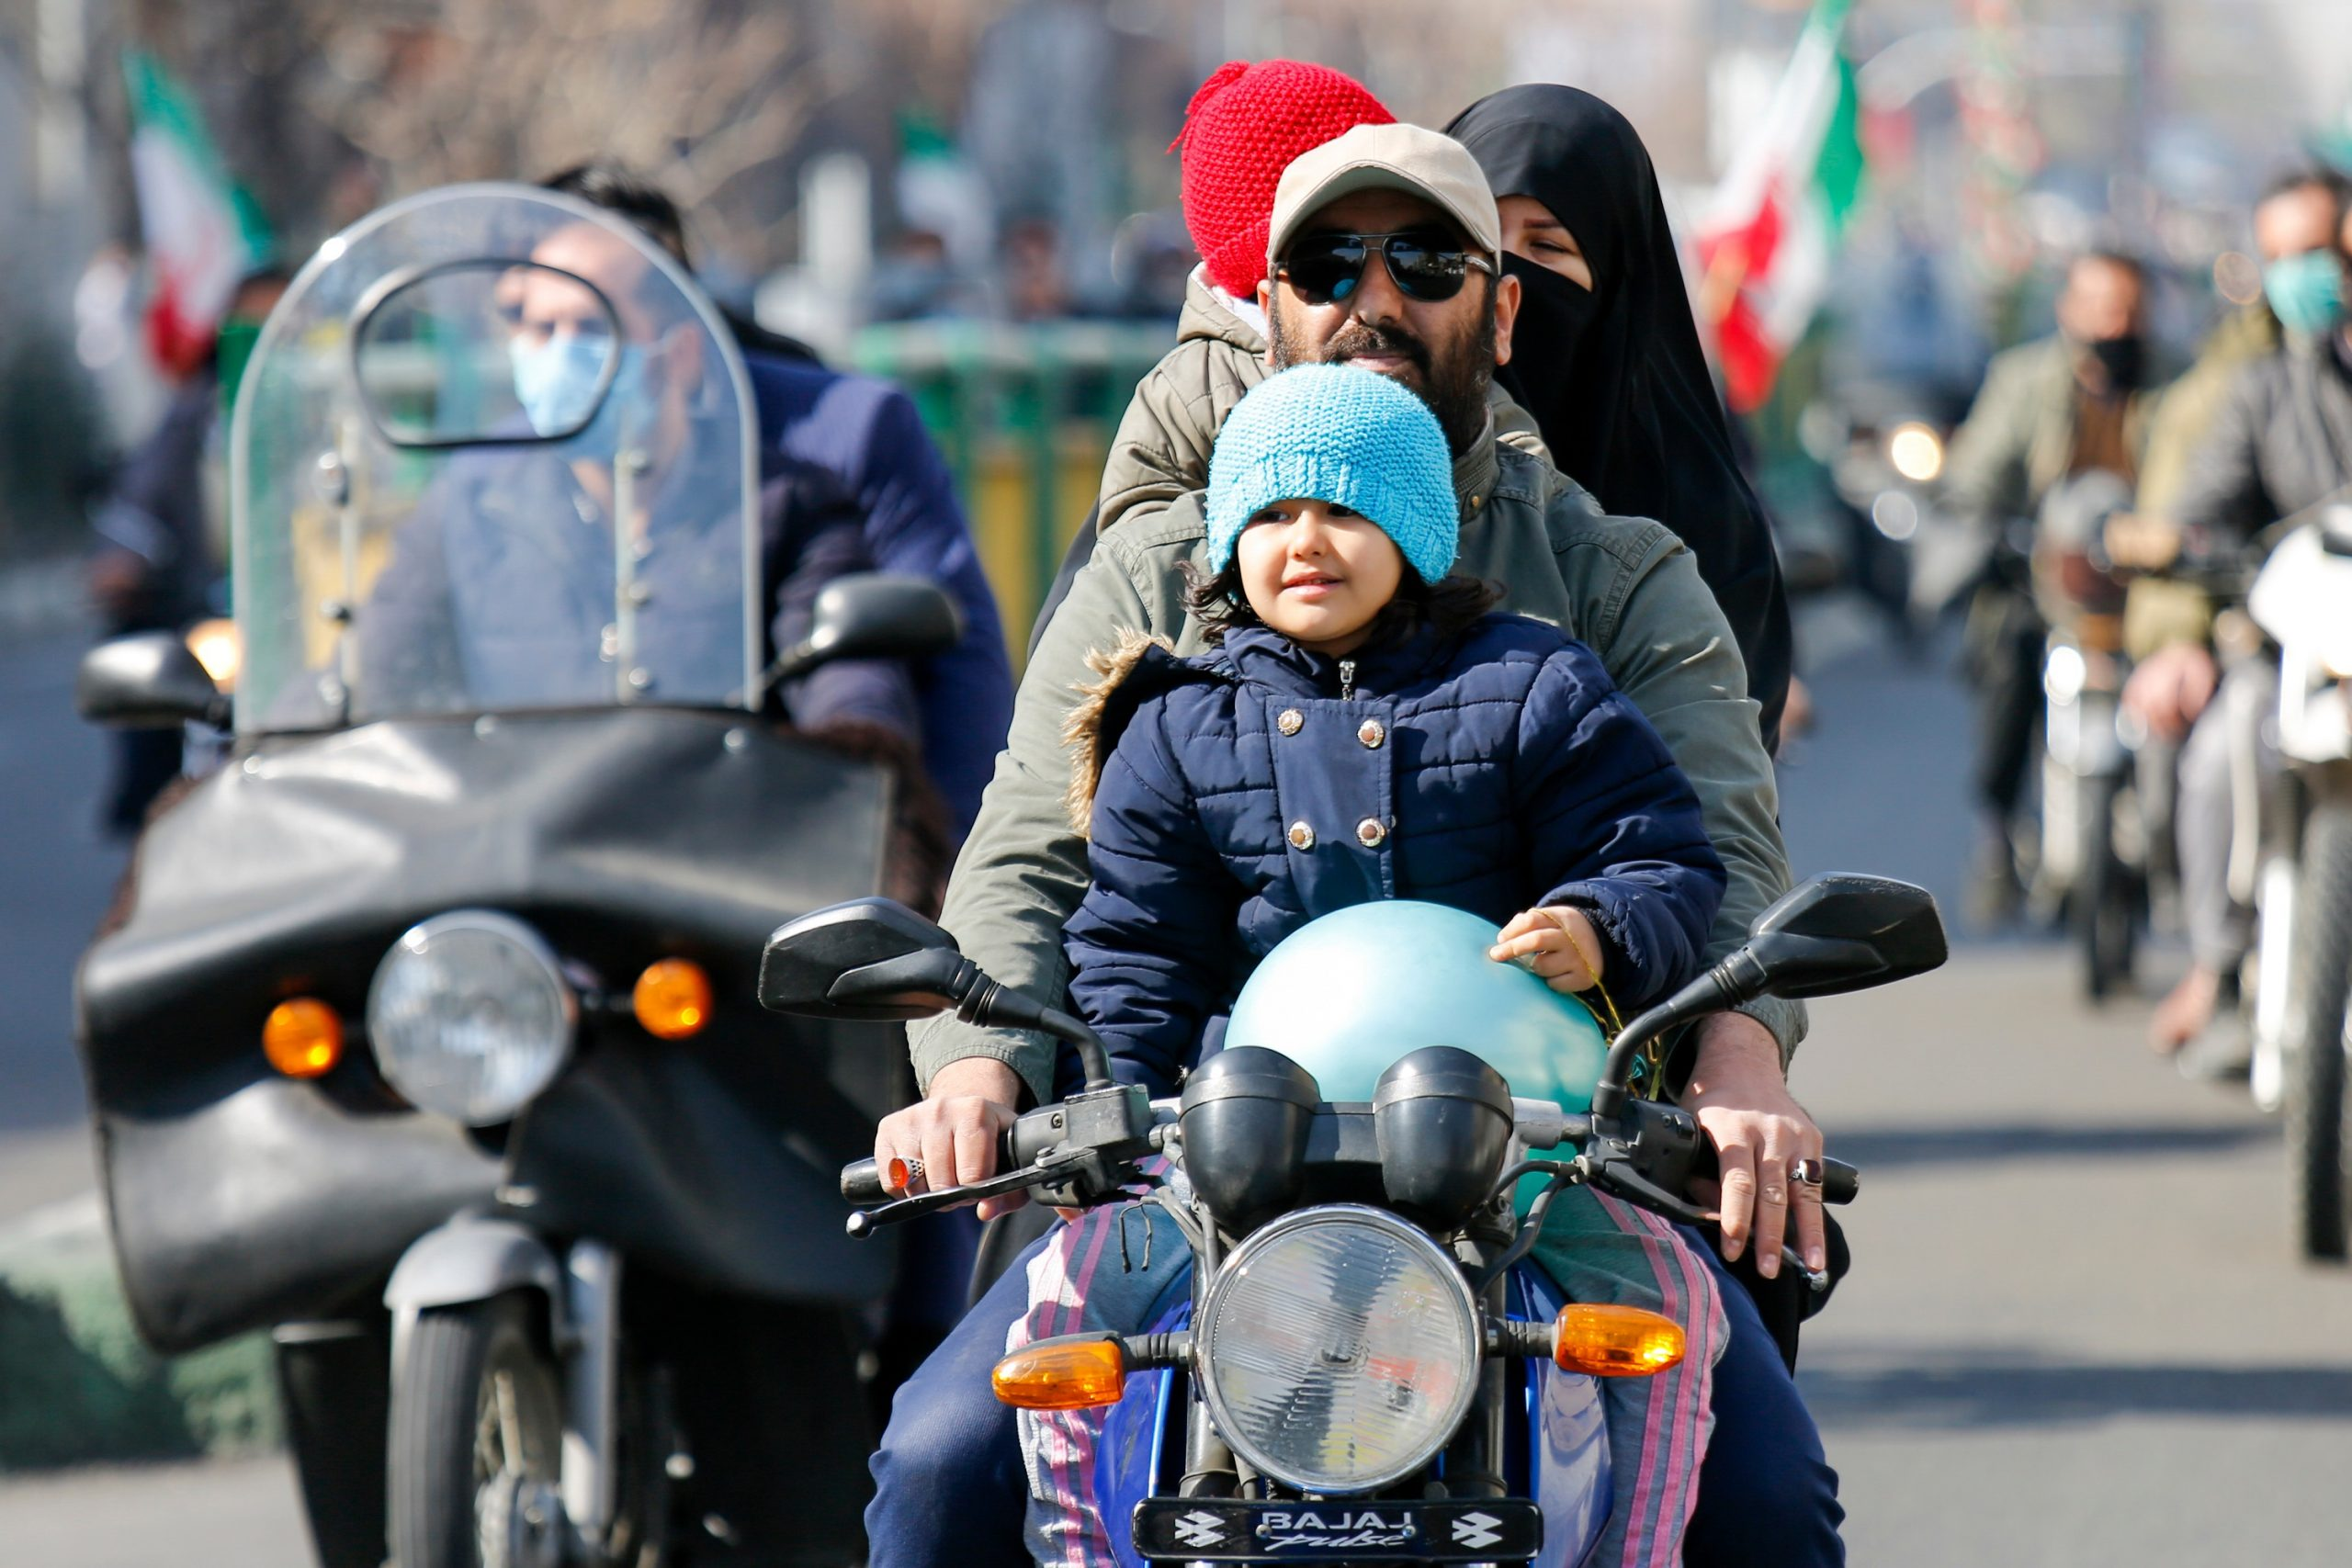 Tehran, Iran - February 10, 2021 -People took part in the drive-in rallies on their motorcycles amid the pandemic to commemorate the 42nd victory of the Islamic Revolution in 1979.